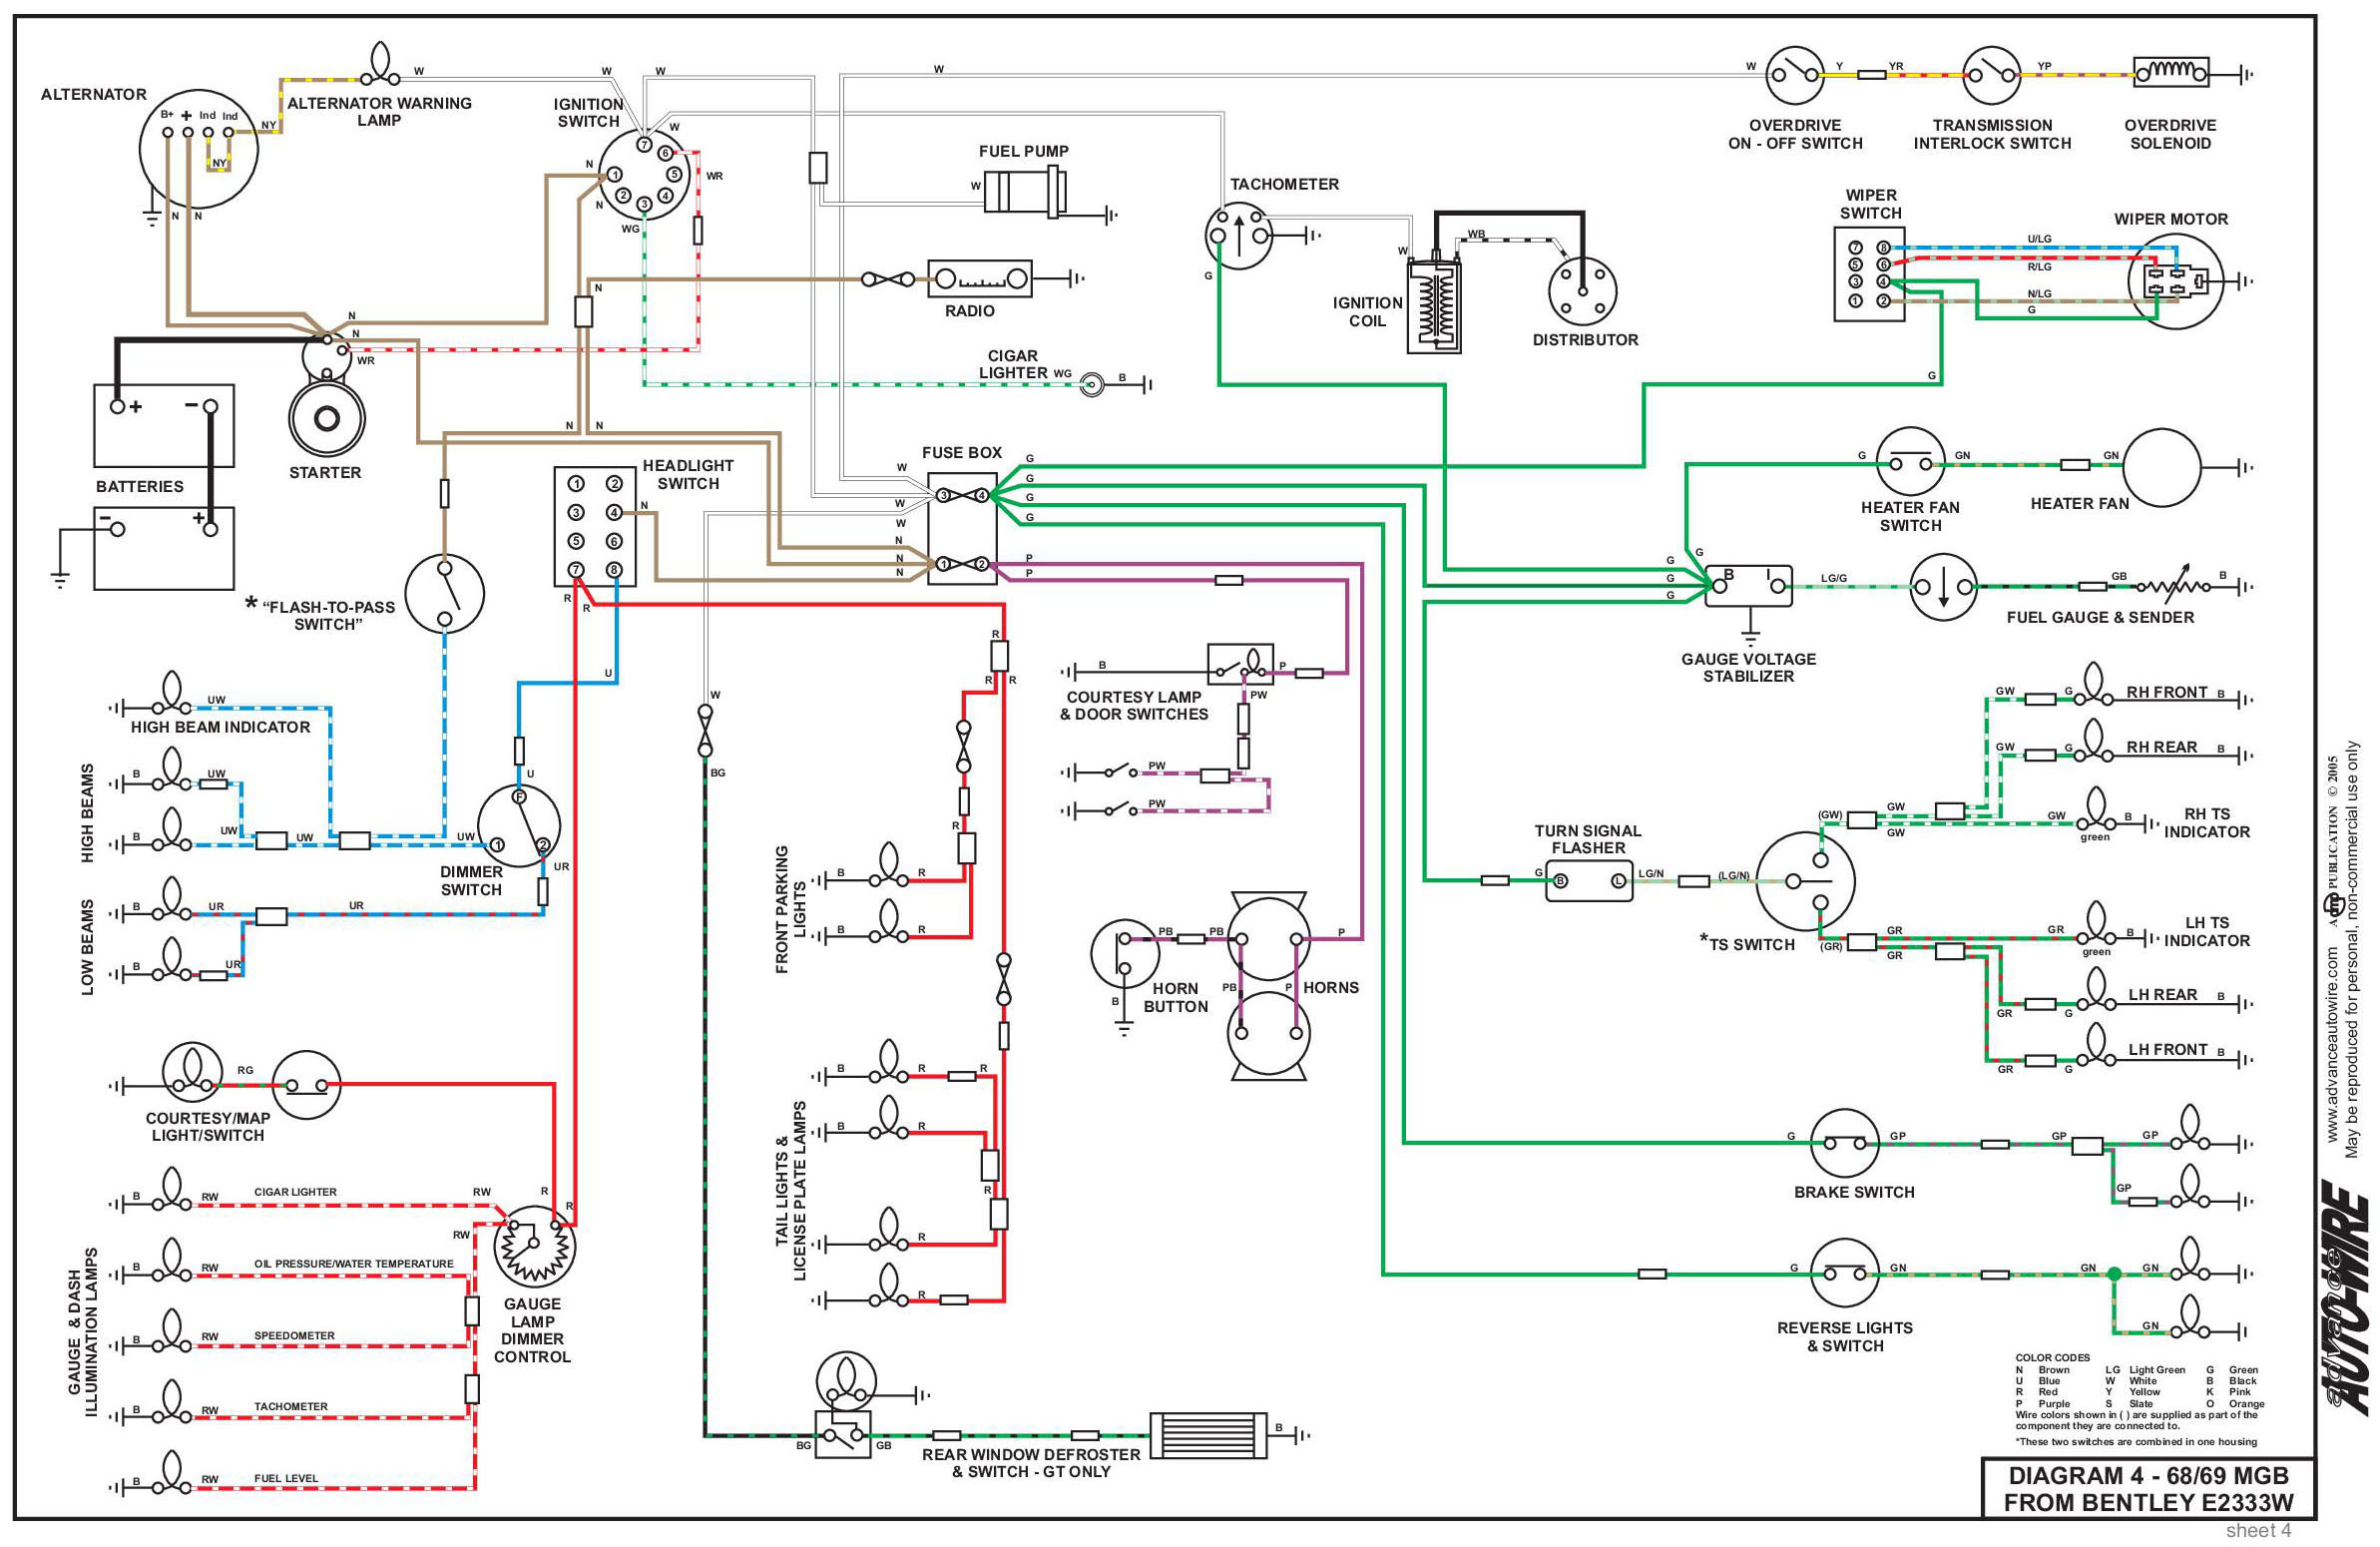 yd_0623] mgb ignition wiring diagram together with 1966 mustang wiring  diagram wiring diagram  ilari viewor mohammedshrine librar wiring 101